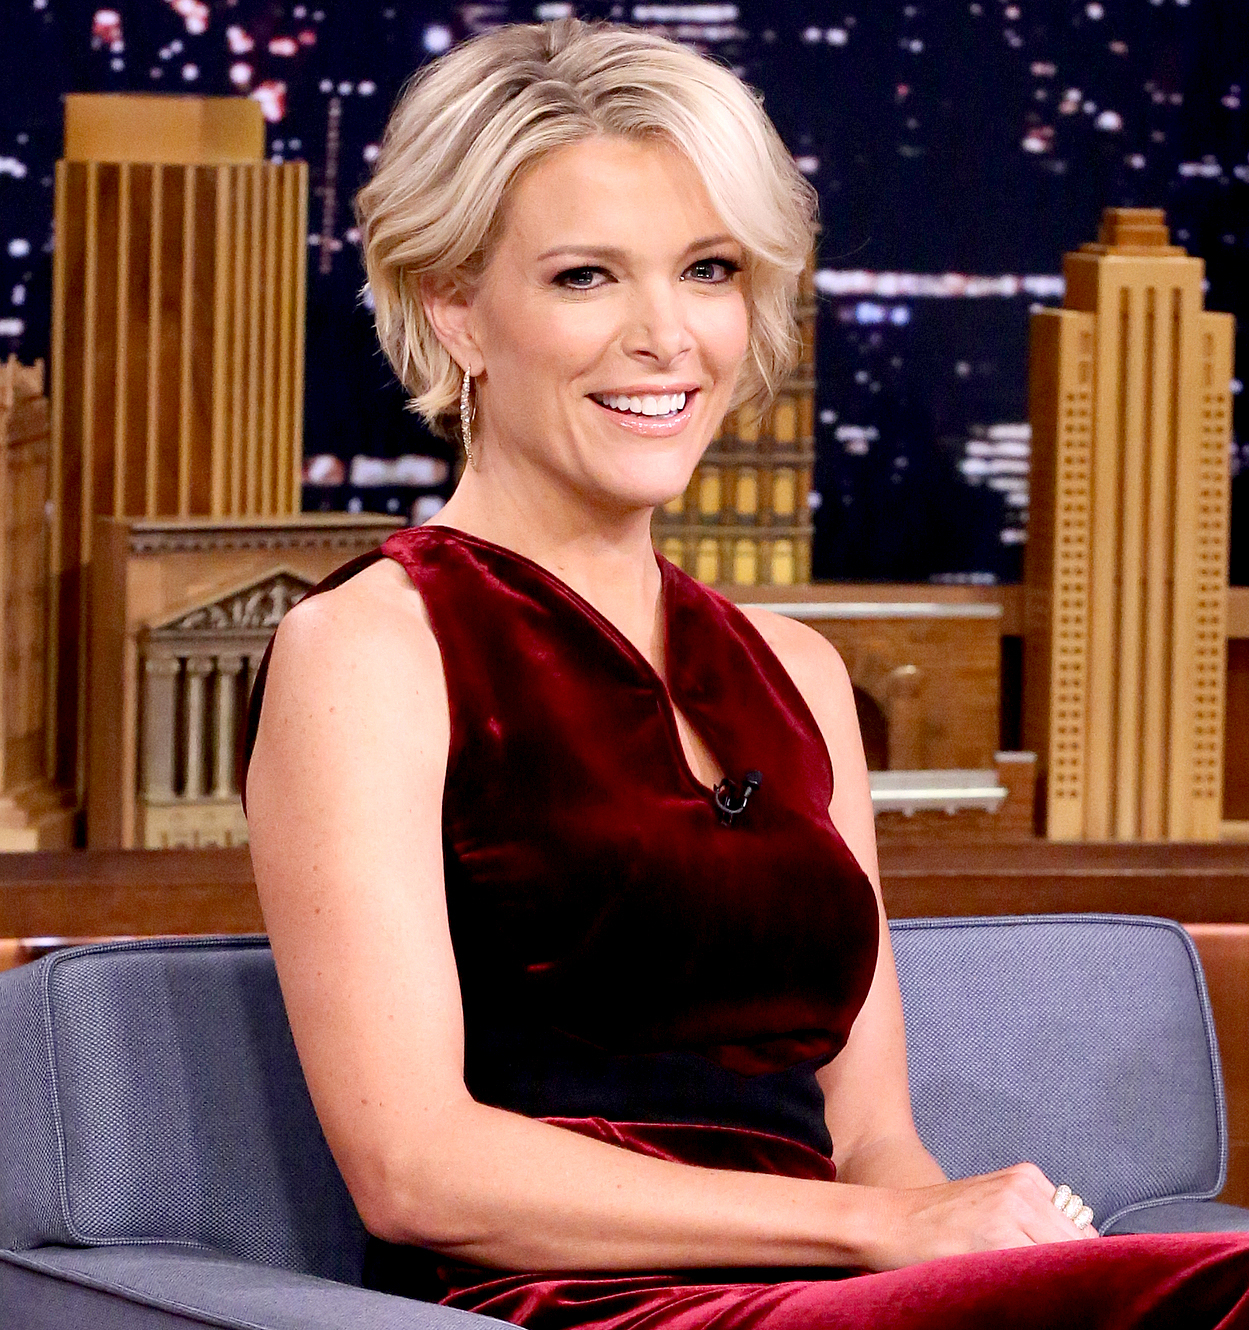 Megyn Kelly during an interview on November 18, 2016.